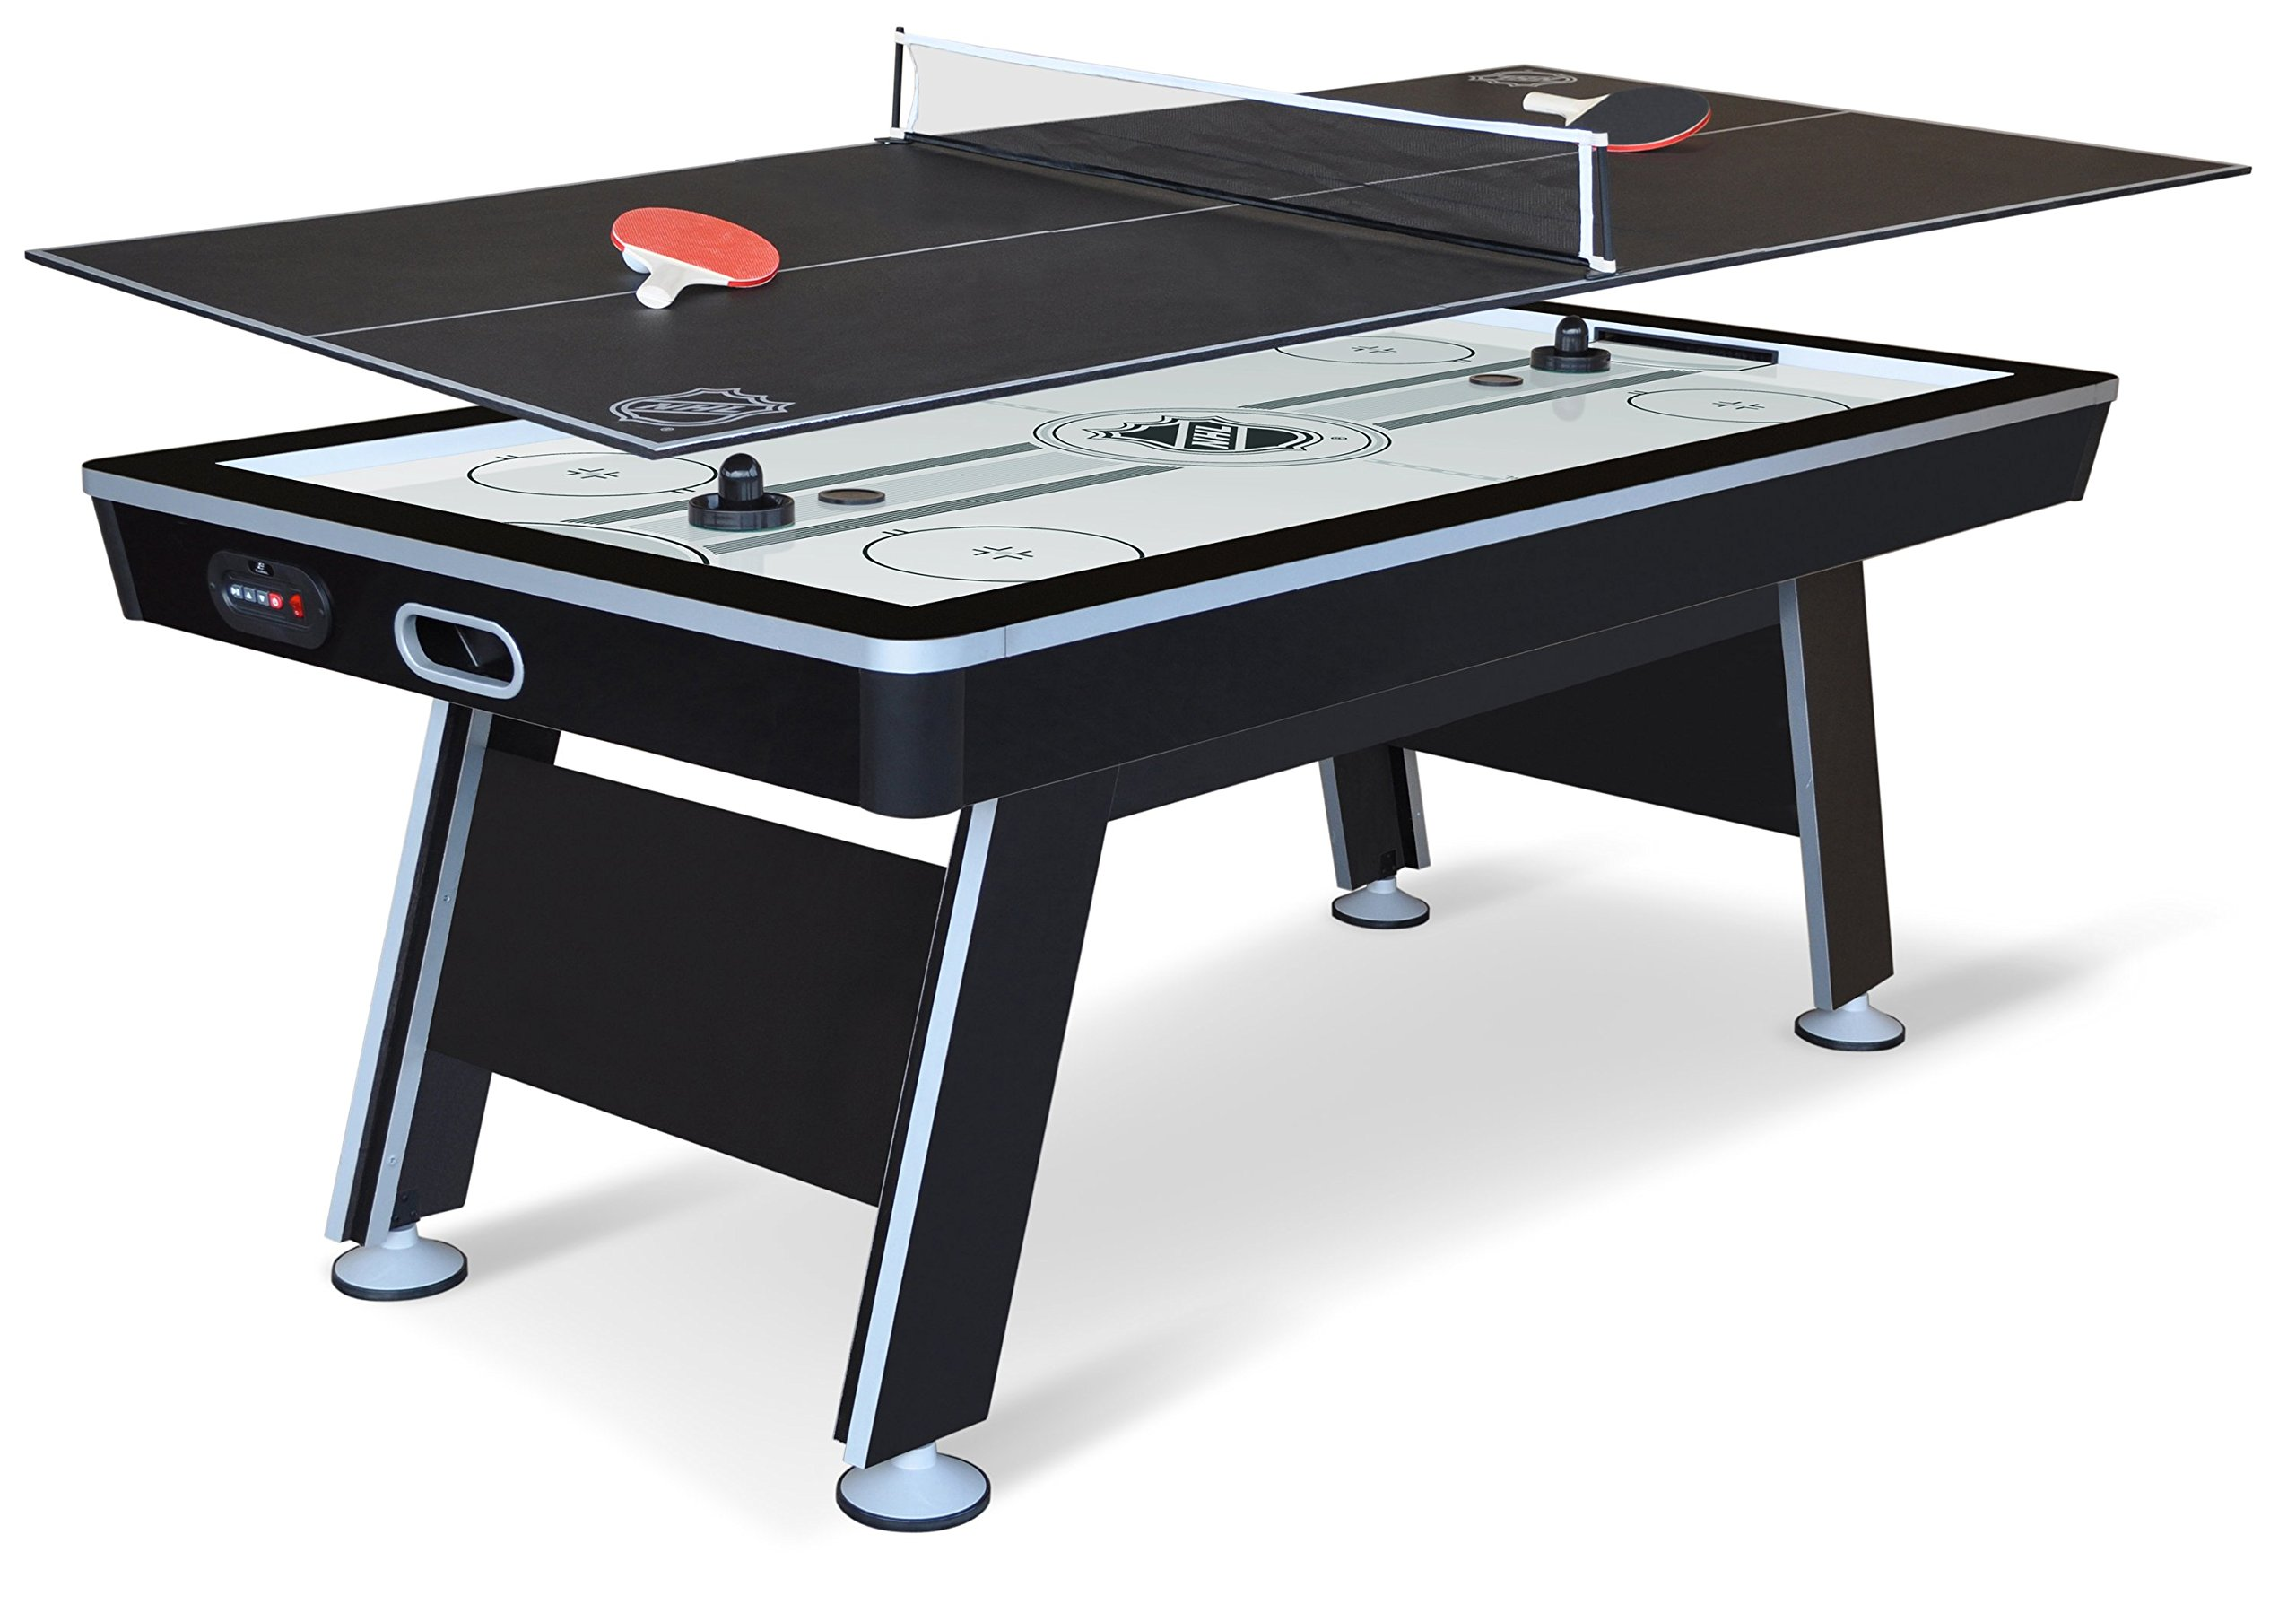 EastPoint Sports NHL Power Play Hover Hockey Table with Table Tennis Top, 80-inch by EastPoint Sports